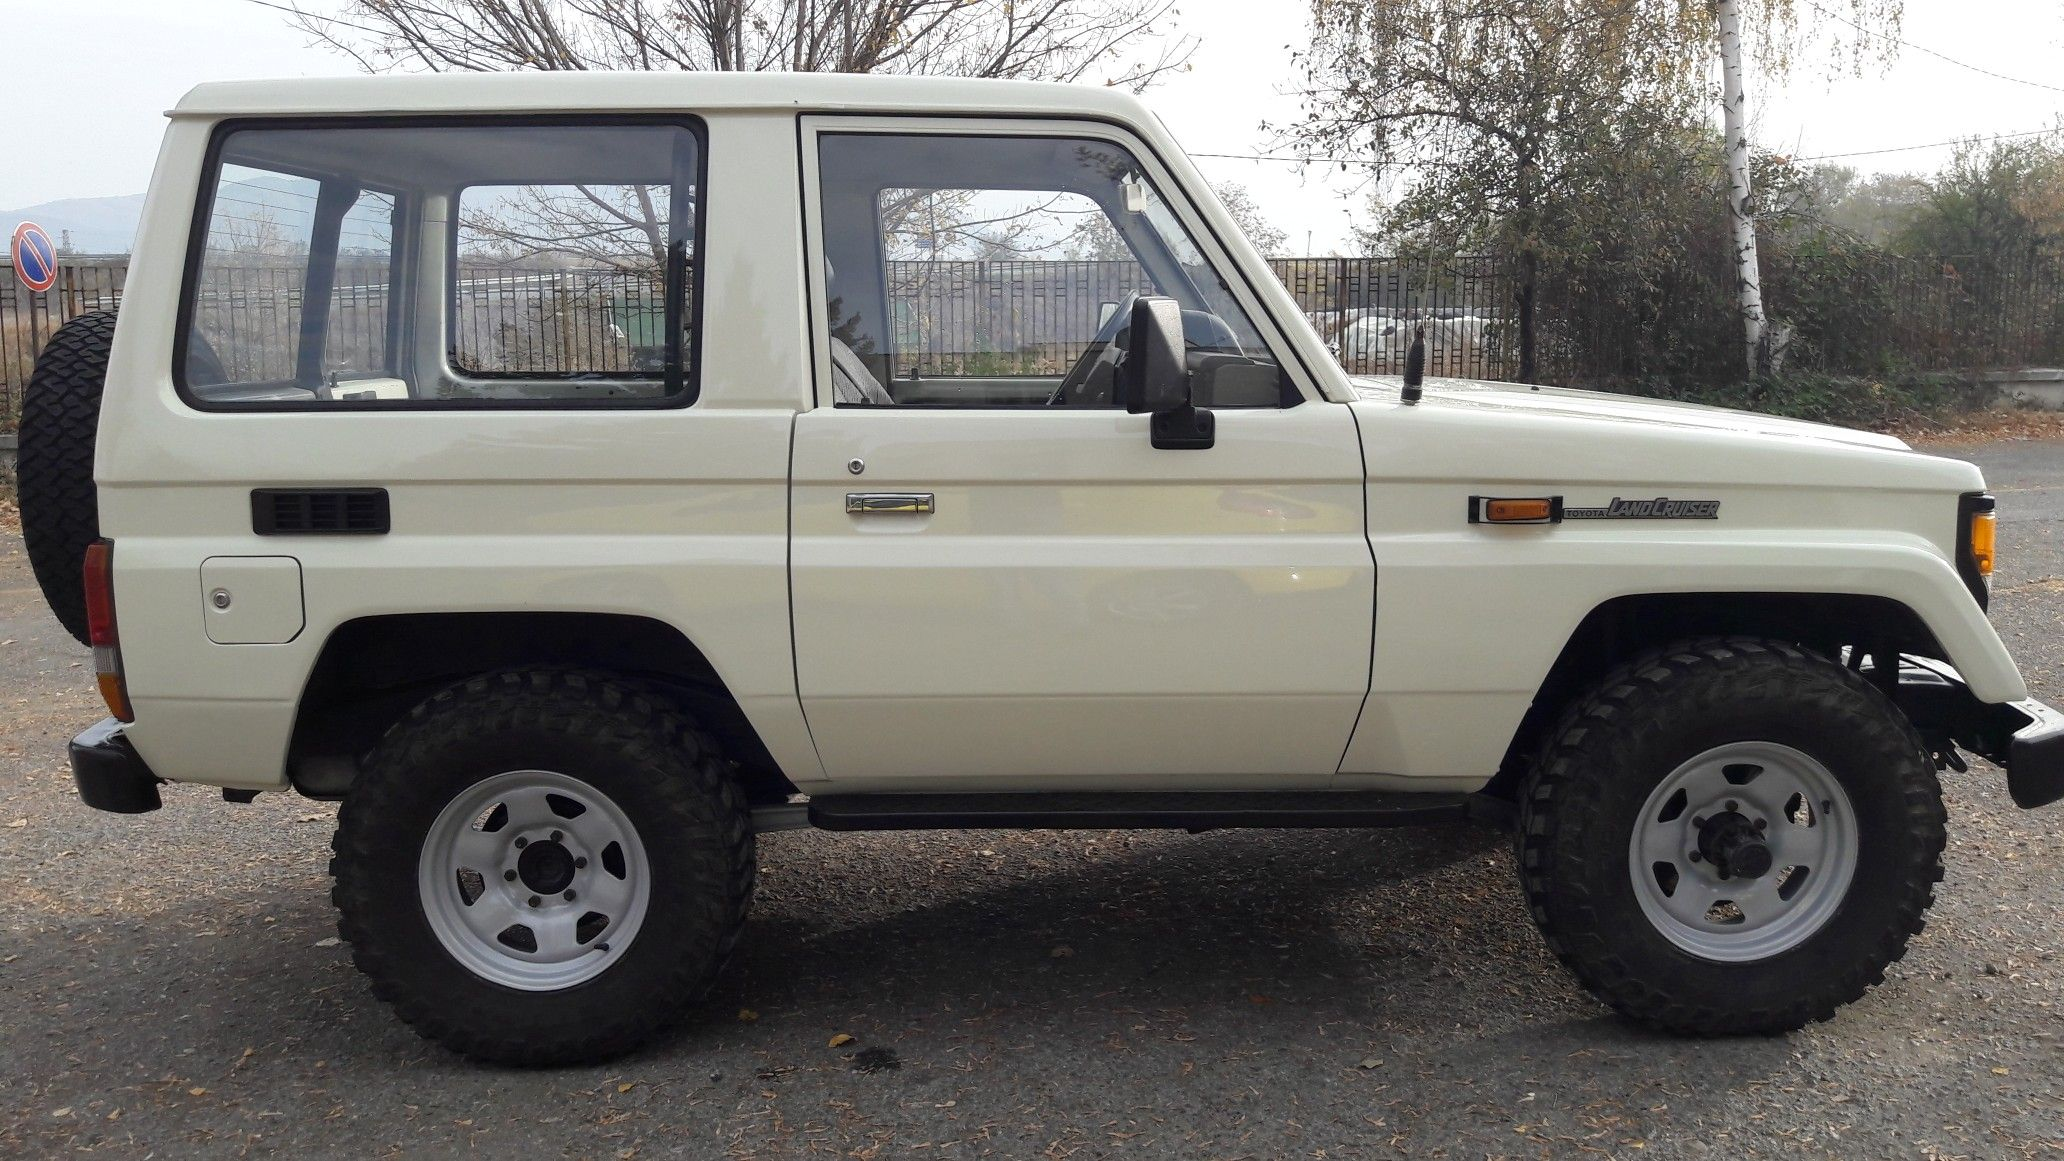 This Is My Toyota Lj70 After Restoration Process